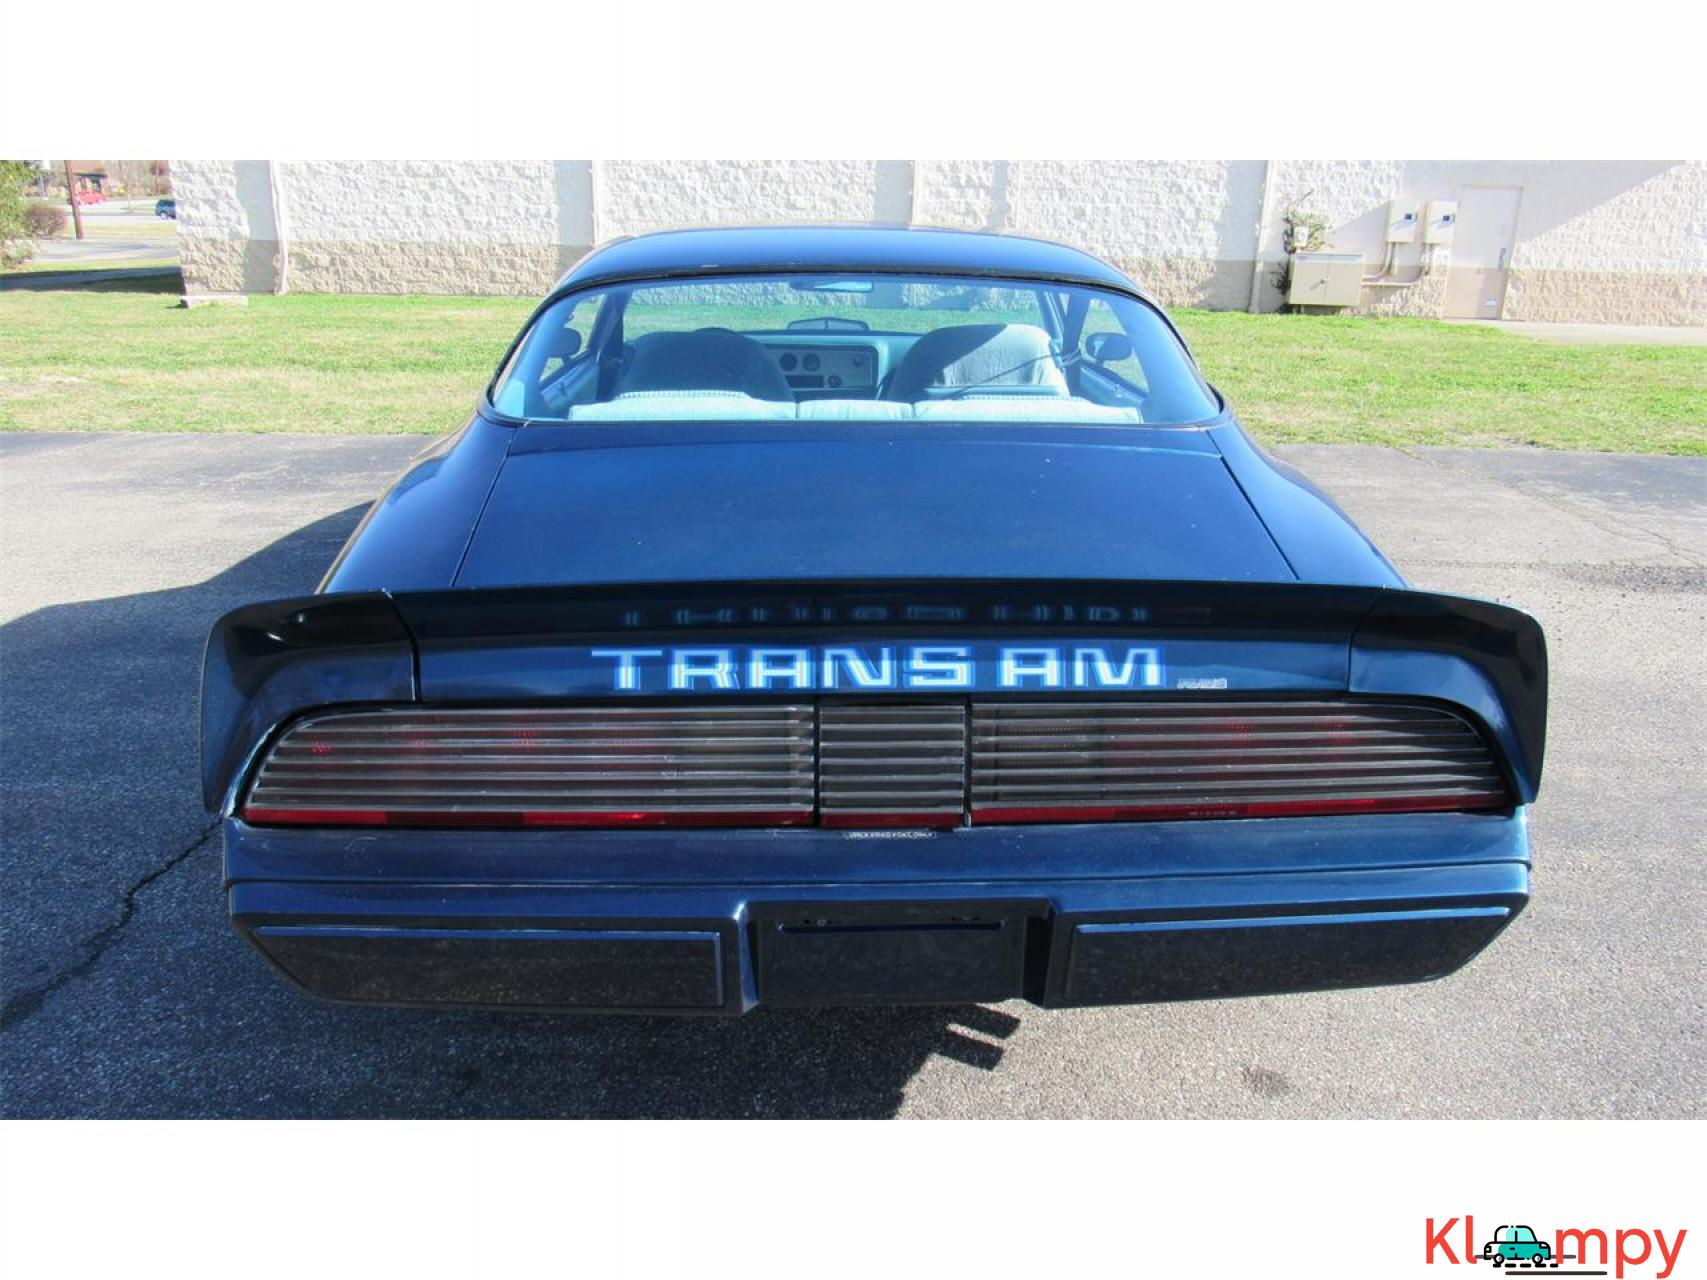 1979 Pontiac Firebird Trans Am 400 engine Original - 5/20